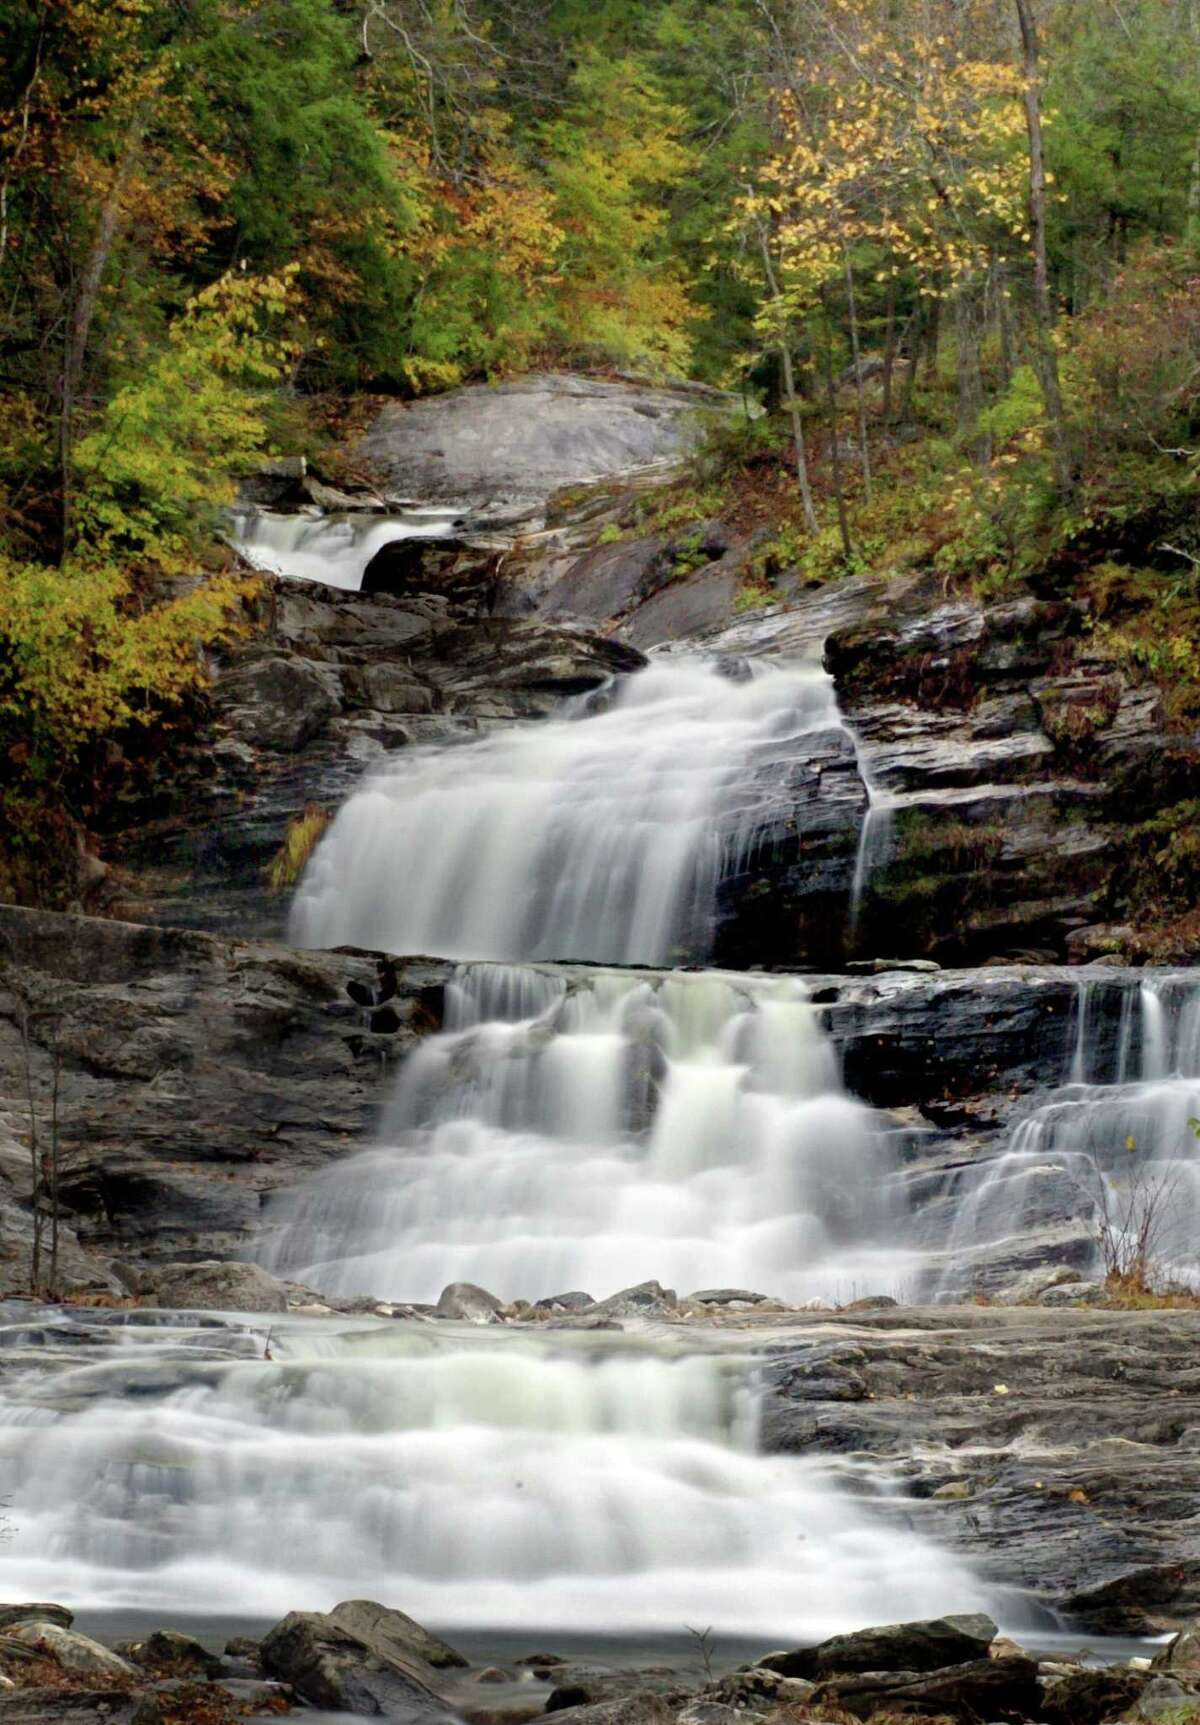 KENT Among the natural attractions in Kent are the gushing waterfalls of Kent Falls State Park and Lake Waramaug State Park.  On Foot: Walk around the Flanders Historic District, where you'll find the pre-revolutionary Seven Hearths Museum.